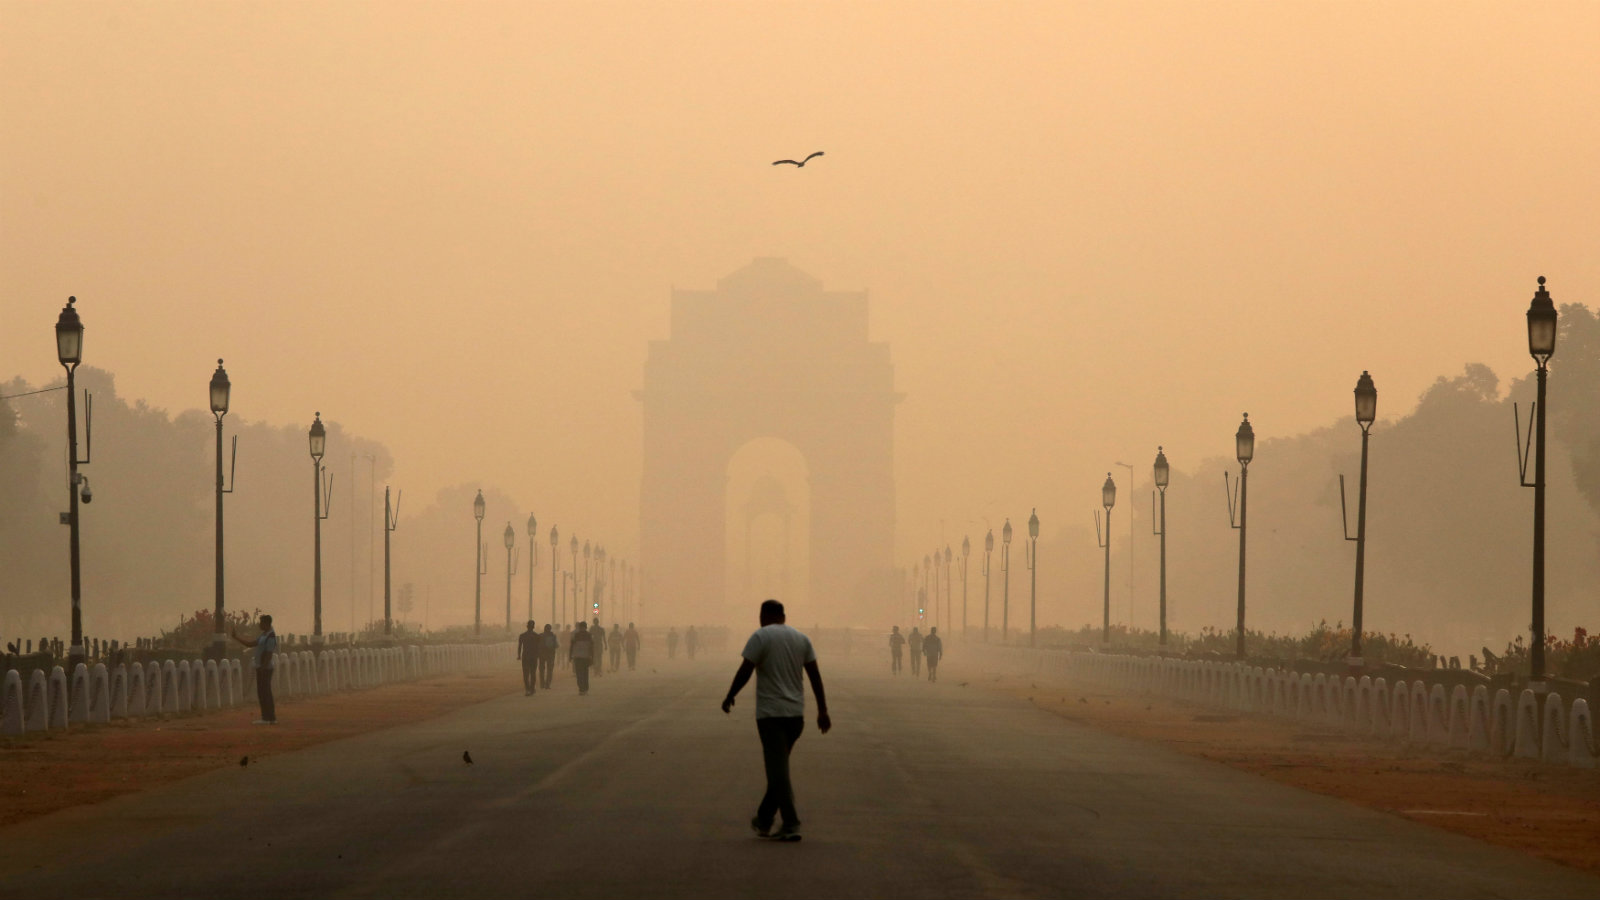 Pollution In Delhi Has Resulted In Smaller Lung Size In Children: Study